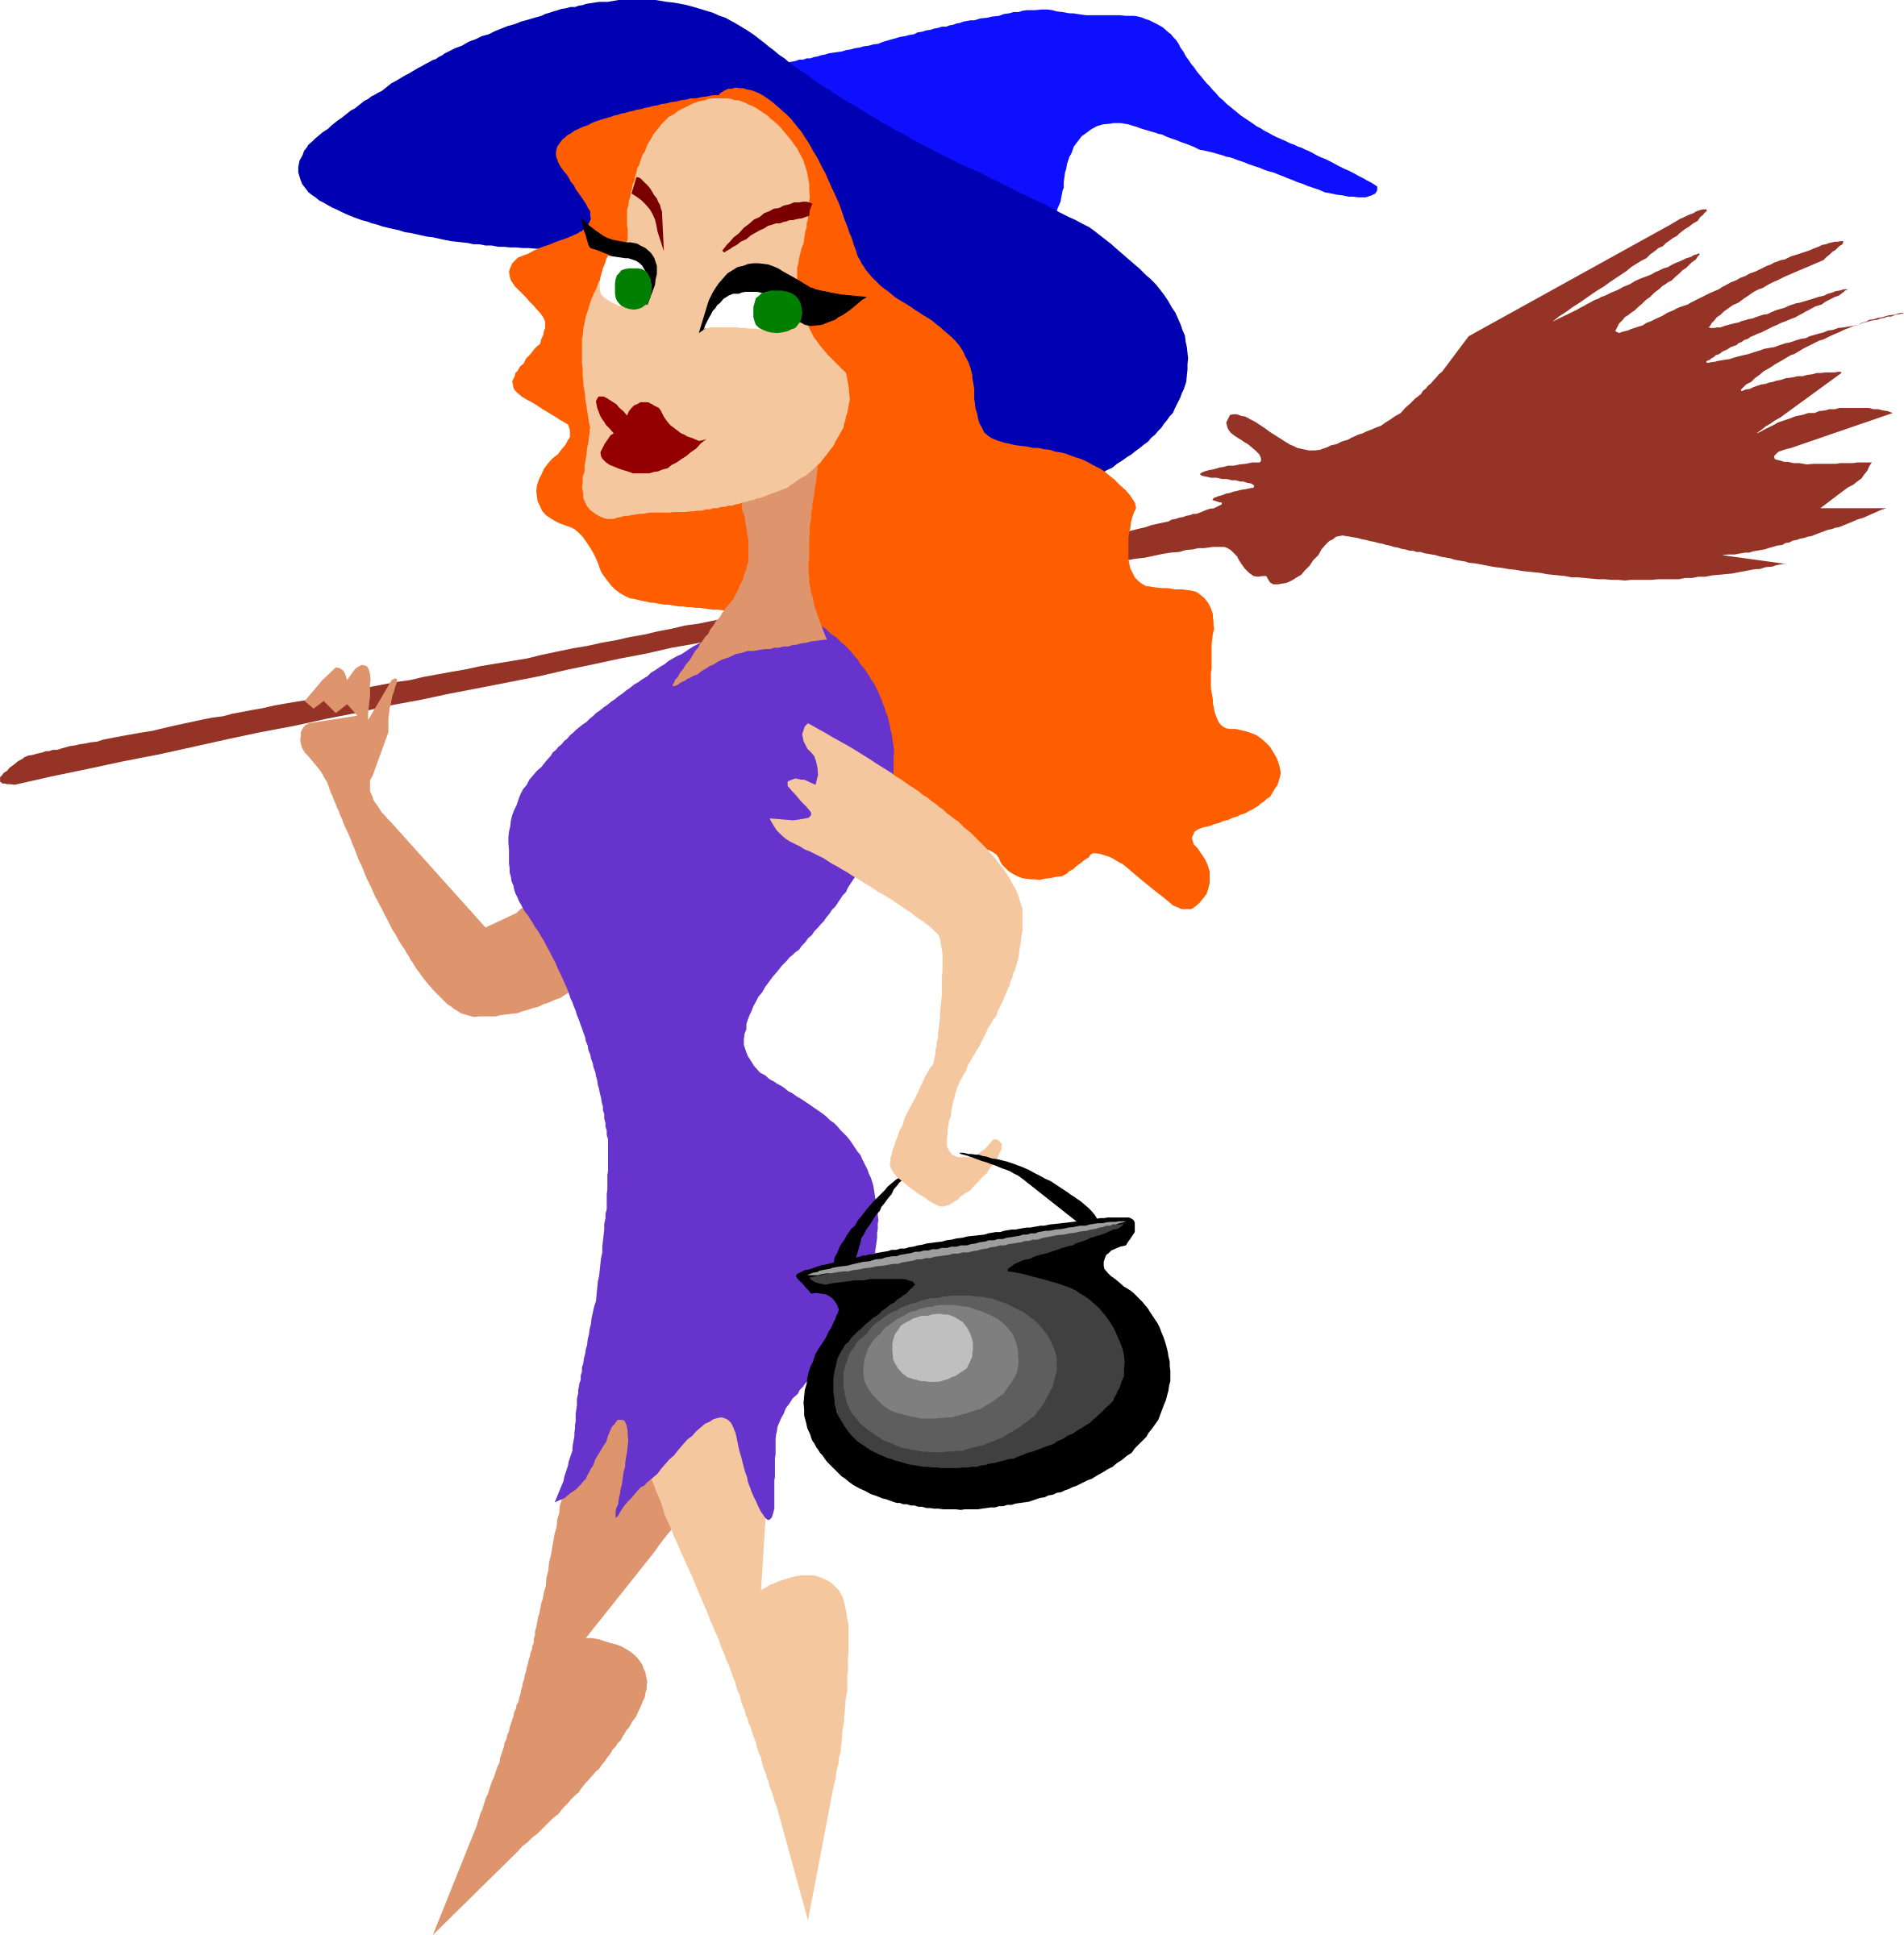 Big image png. Witch clipart pretty witch